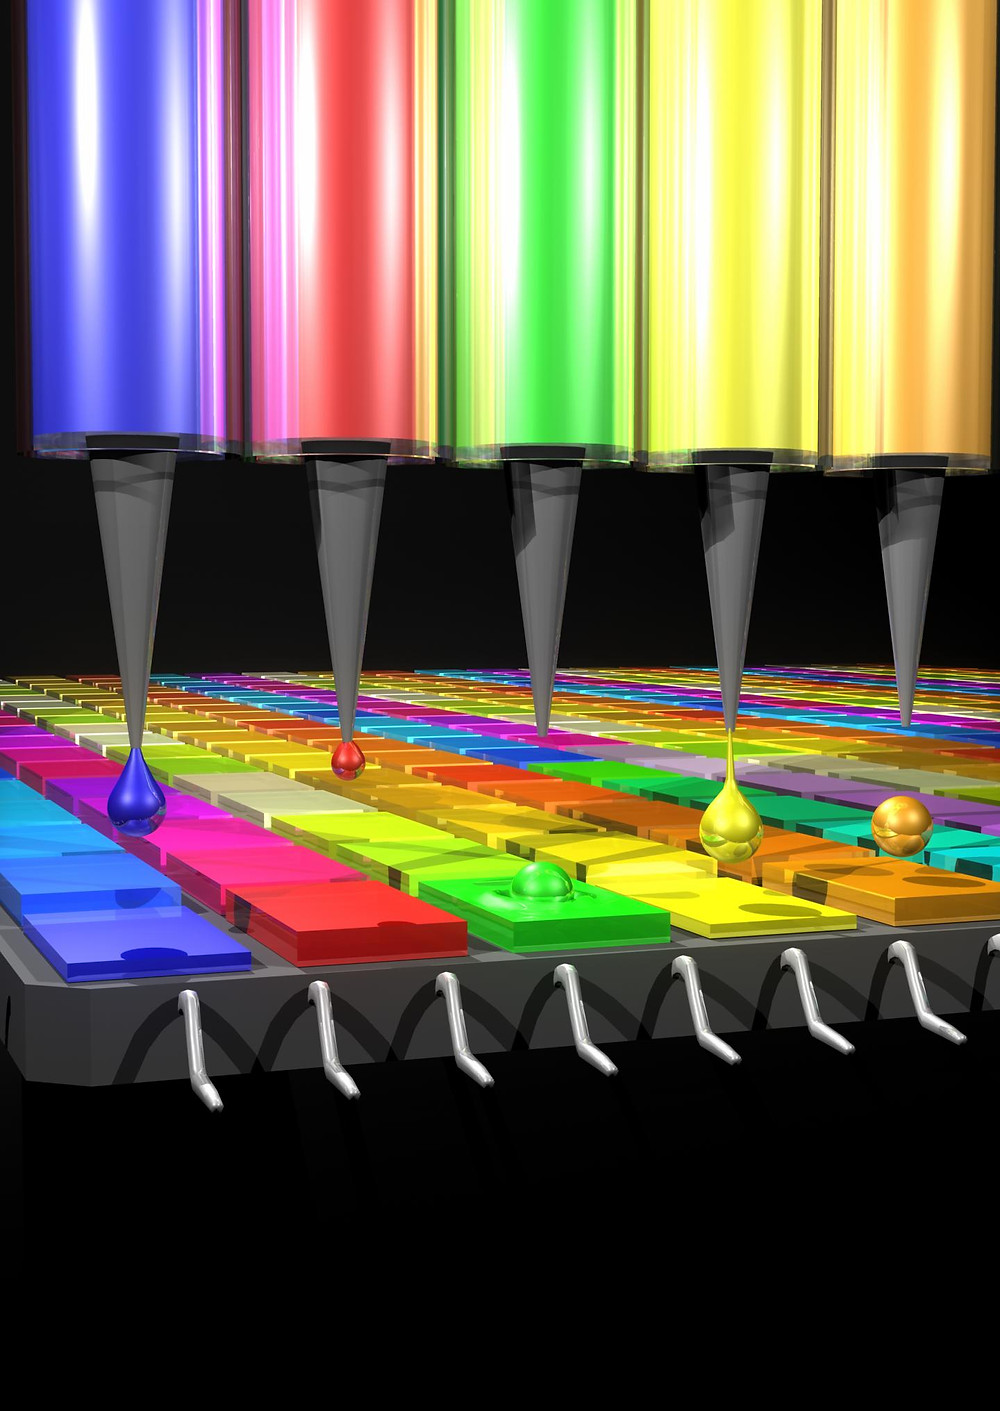 This illustration shows how a device prints the quantum dot filters that absorb different wavelengths of light depending on their size and composition. The emerging technology could give scientists a more flexible, cost-effective approach for developing spectrometers, a commonly used instrument. @ Credits: O'Reilly Science Art